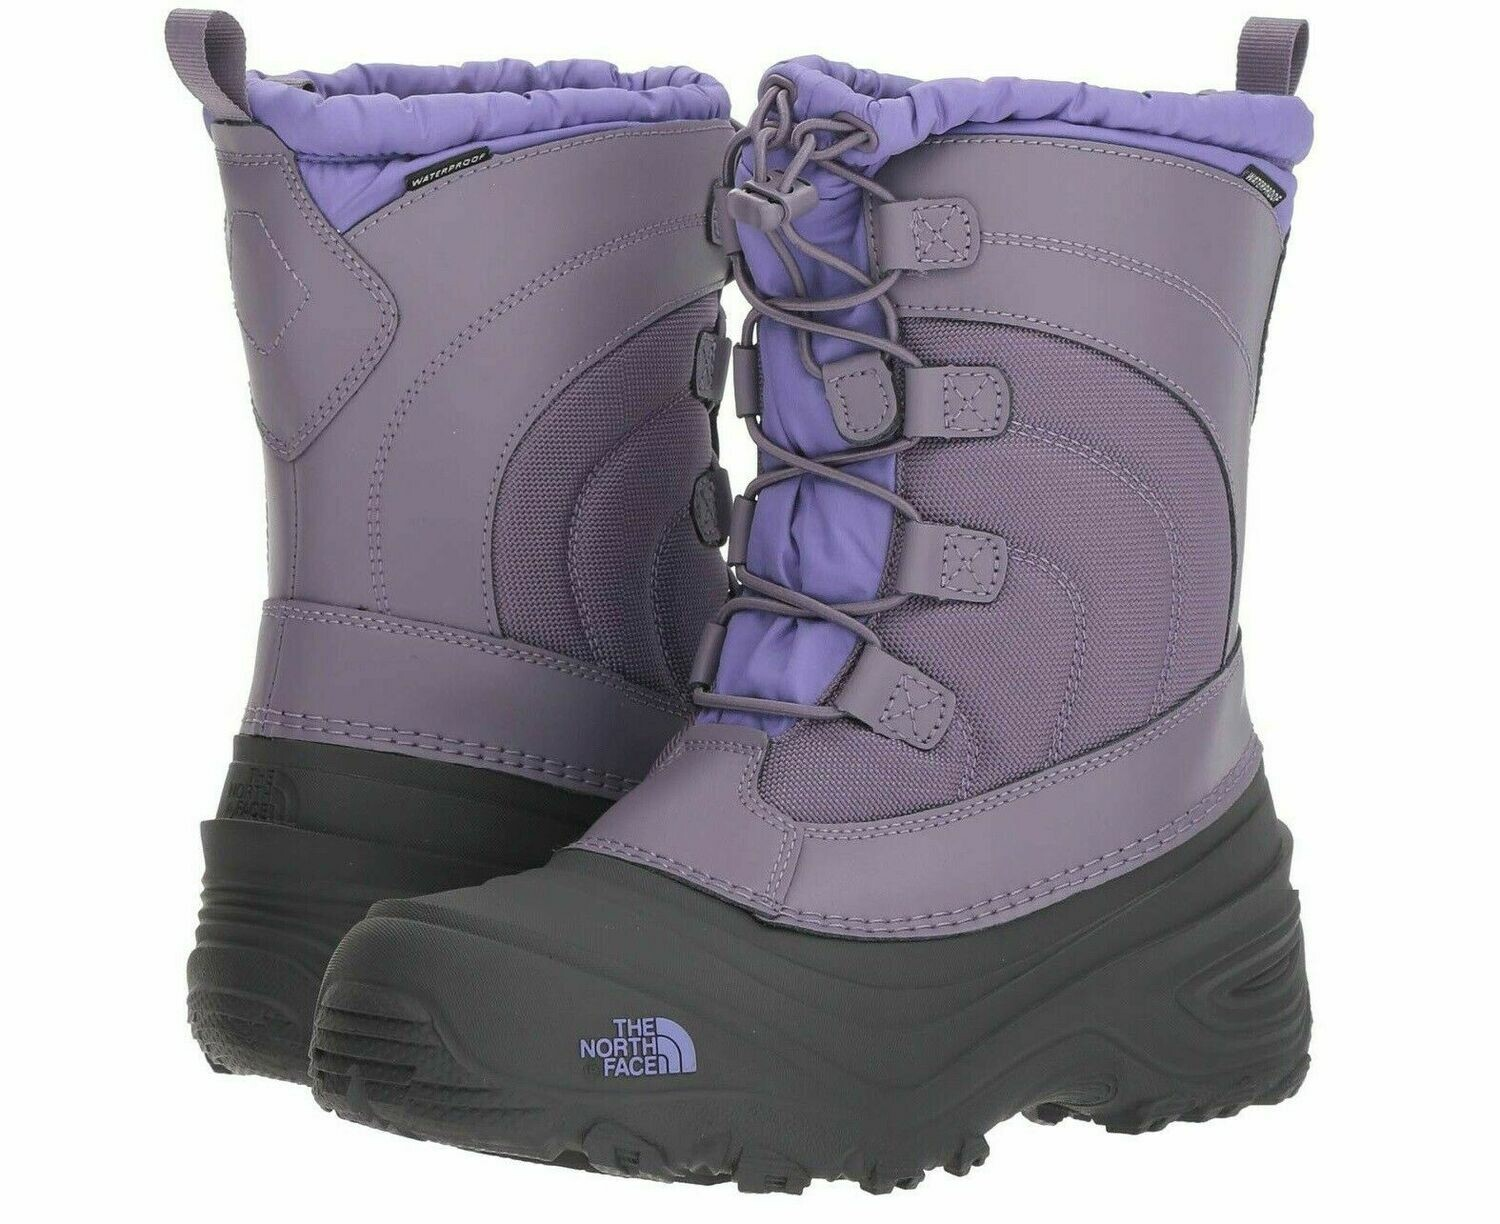 The North Face Youth Alpenglow IV Boots